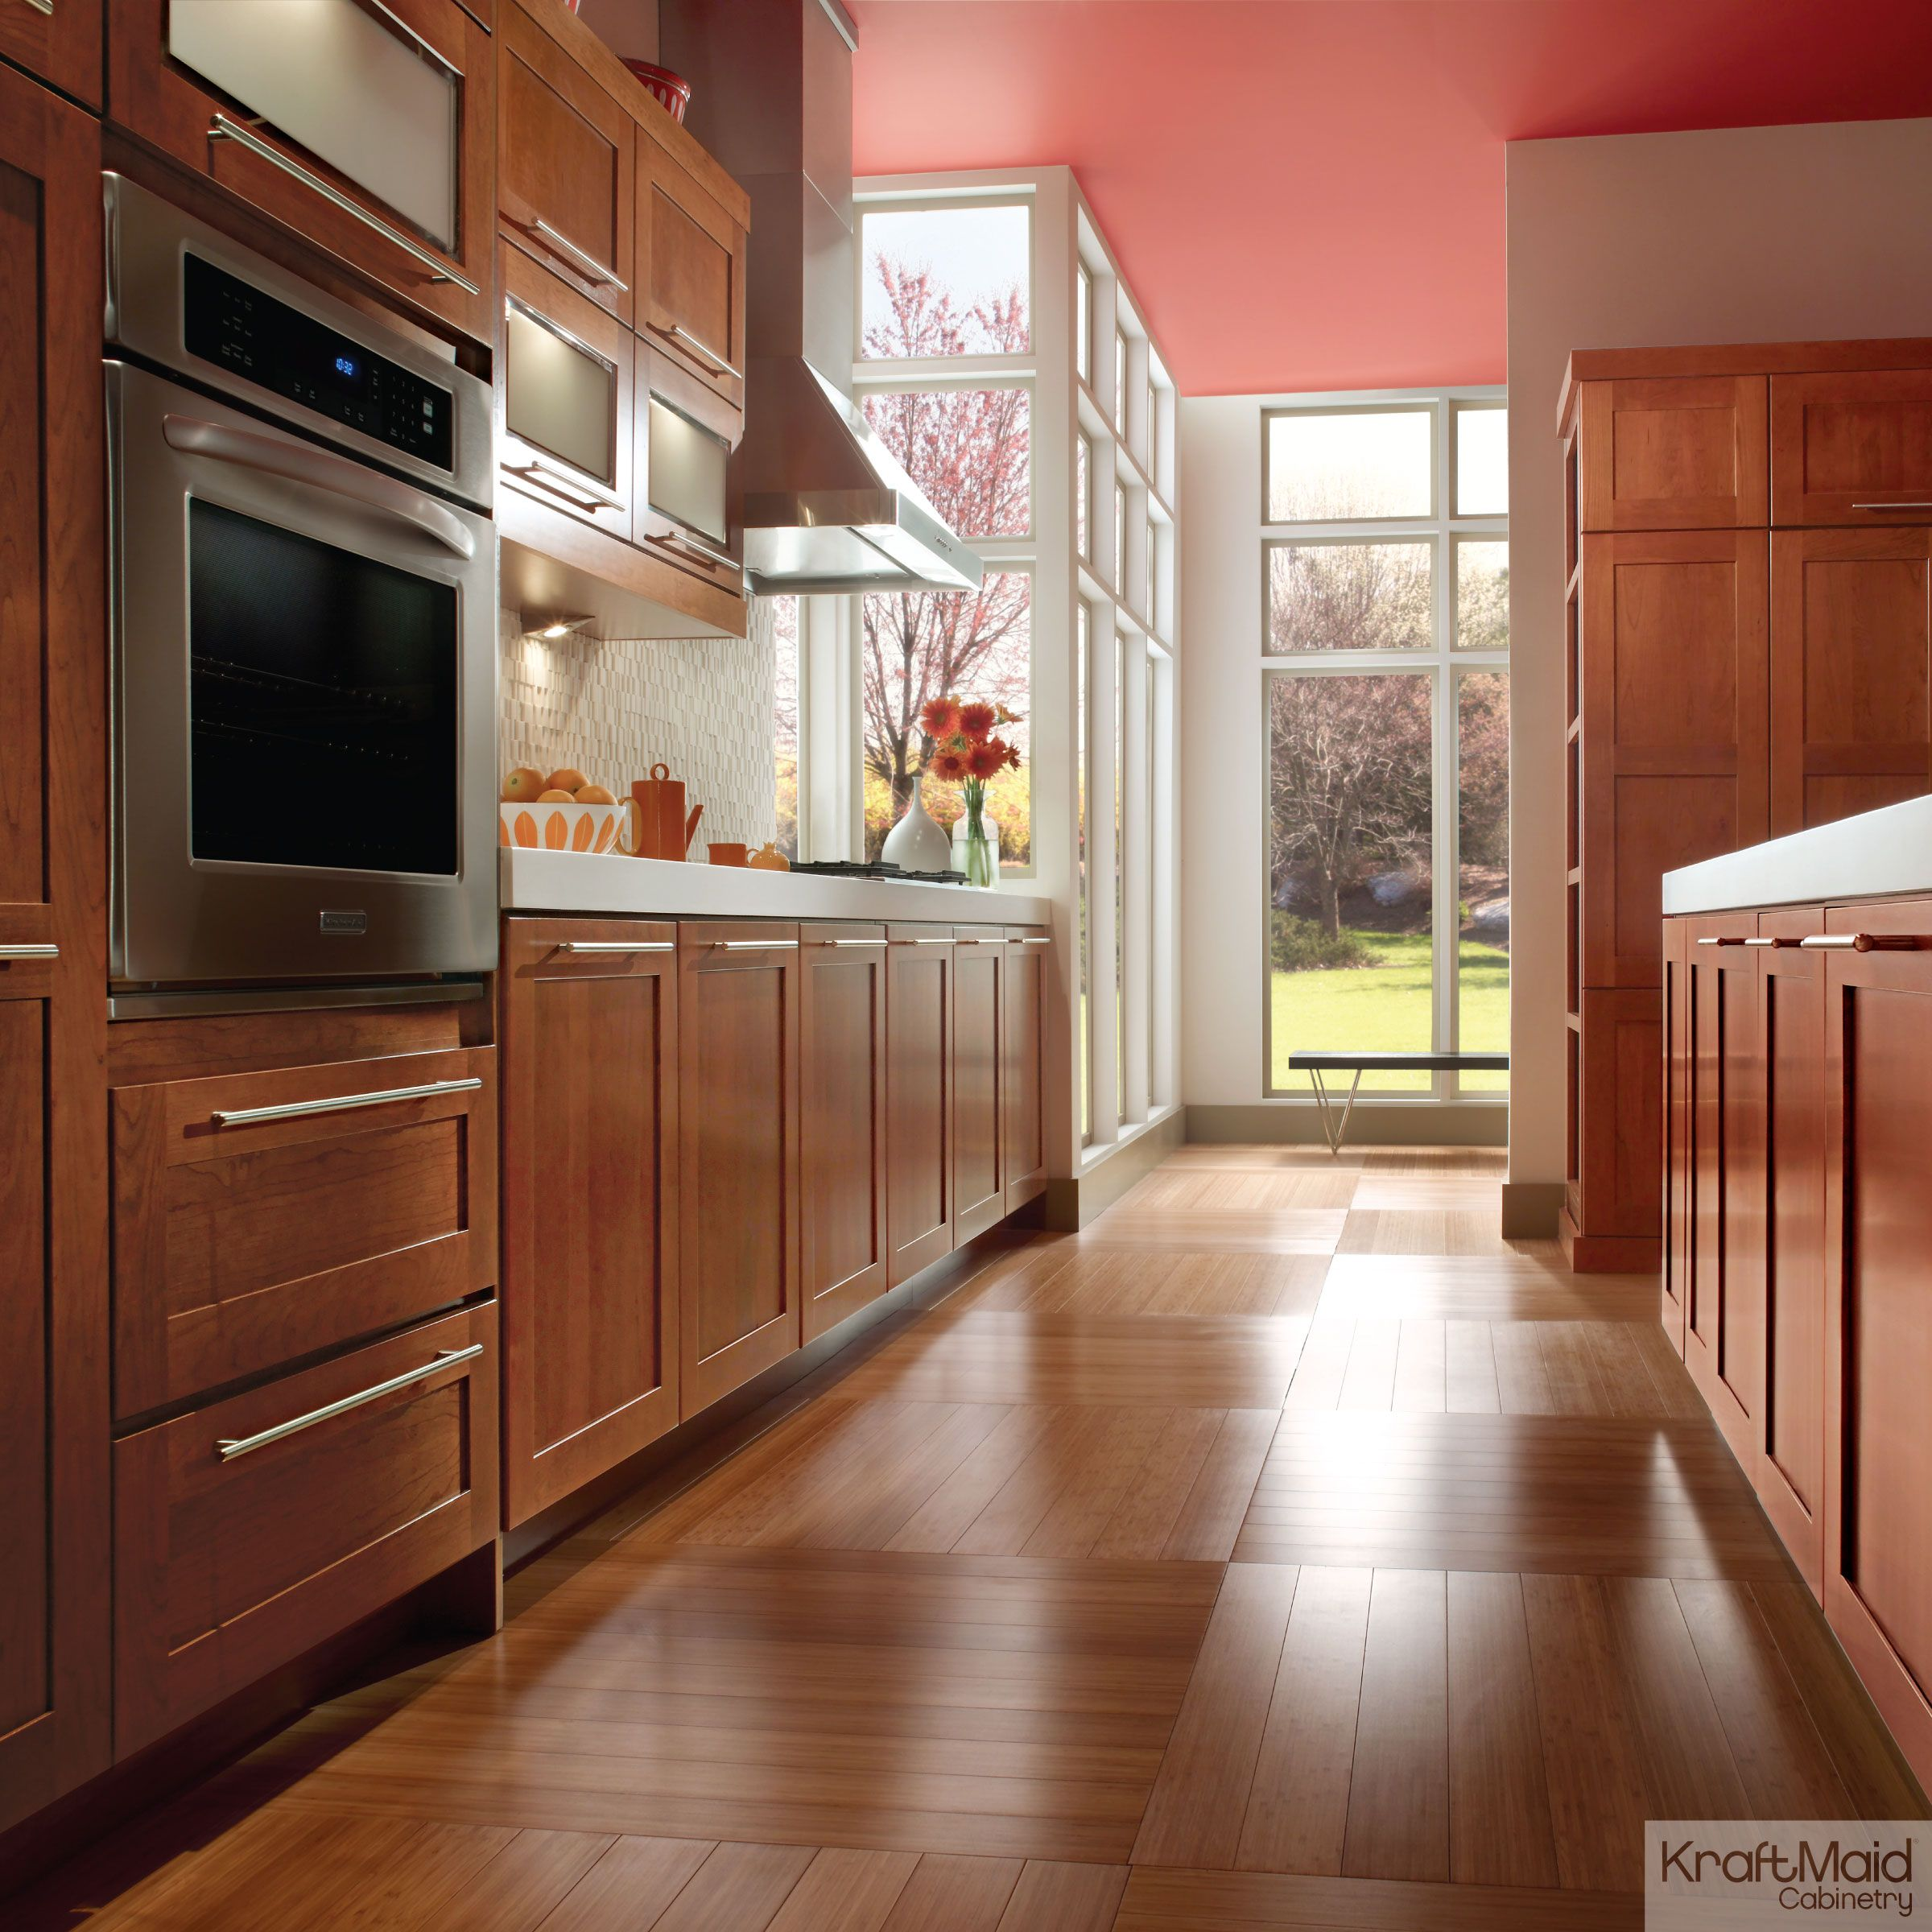 kraftmaid kitchens gallery kitchen table with built in bench cherry cabinetry kraftmaids cinnamon stain adds warmth